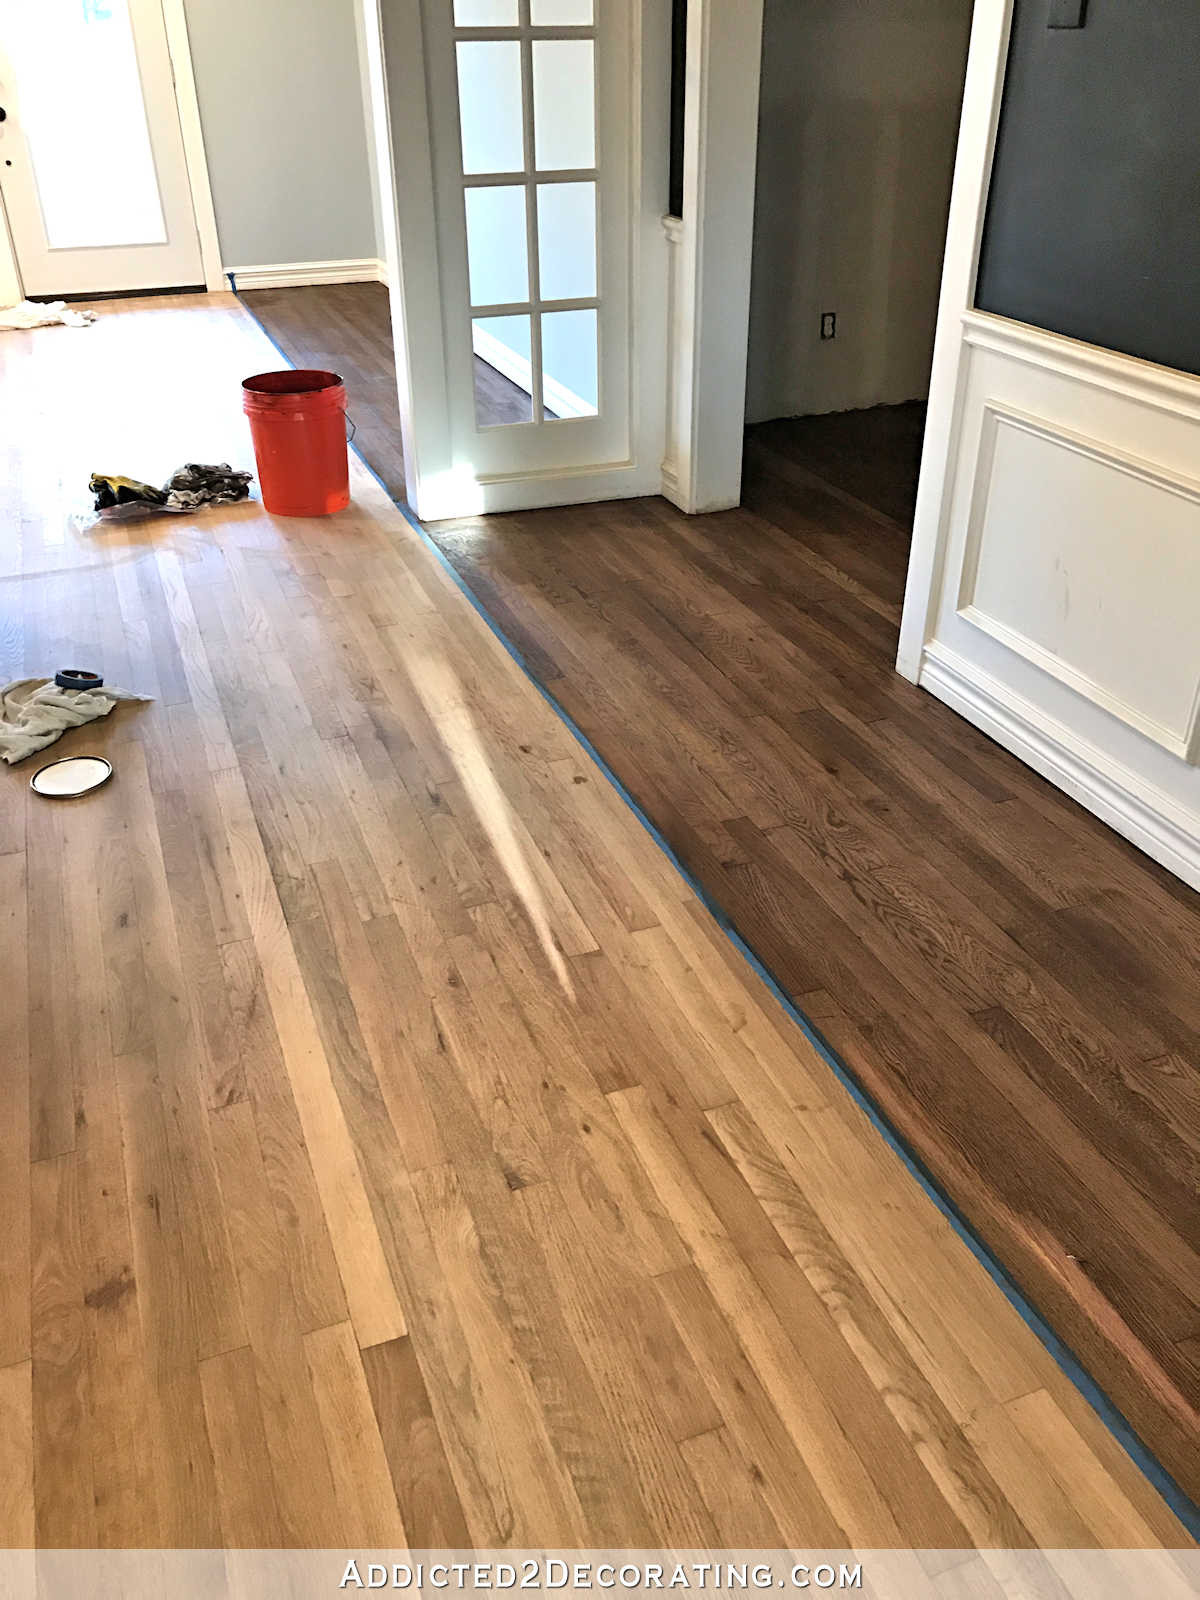 how to restore hardwood floors yourself of adventures in staining my red oak hardwood floors products process for staining red oak hardwood floors 6 stain on partial floor in entryway and music